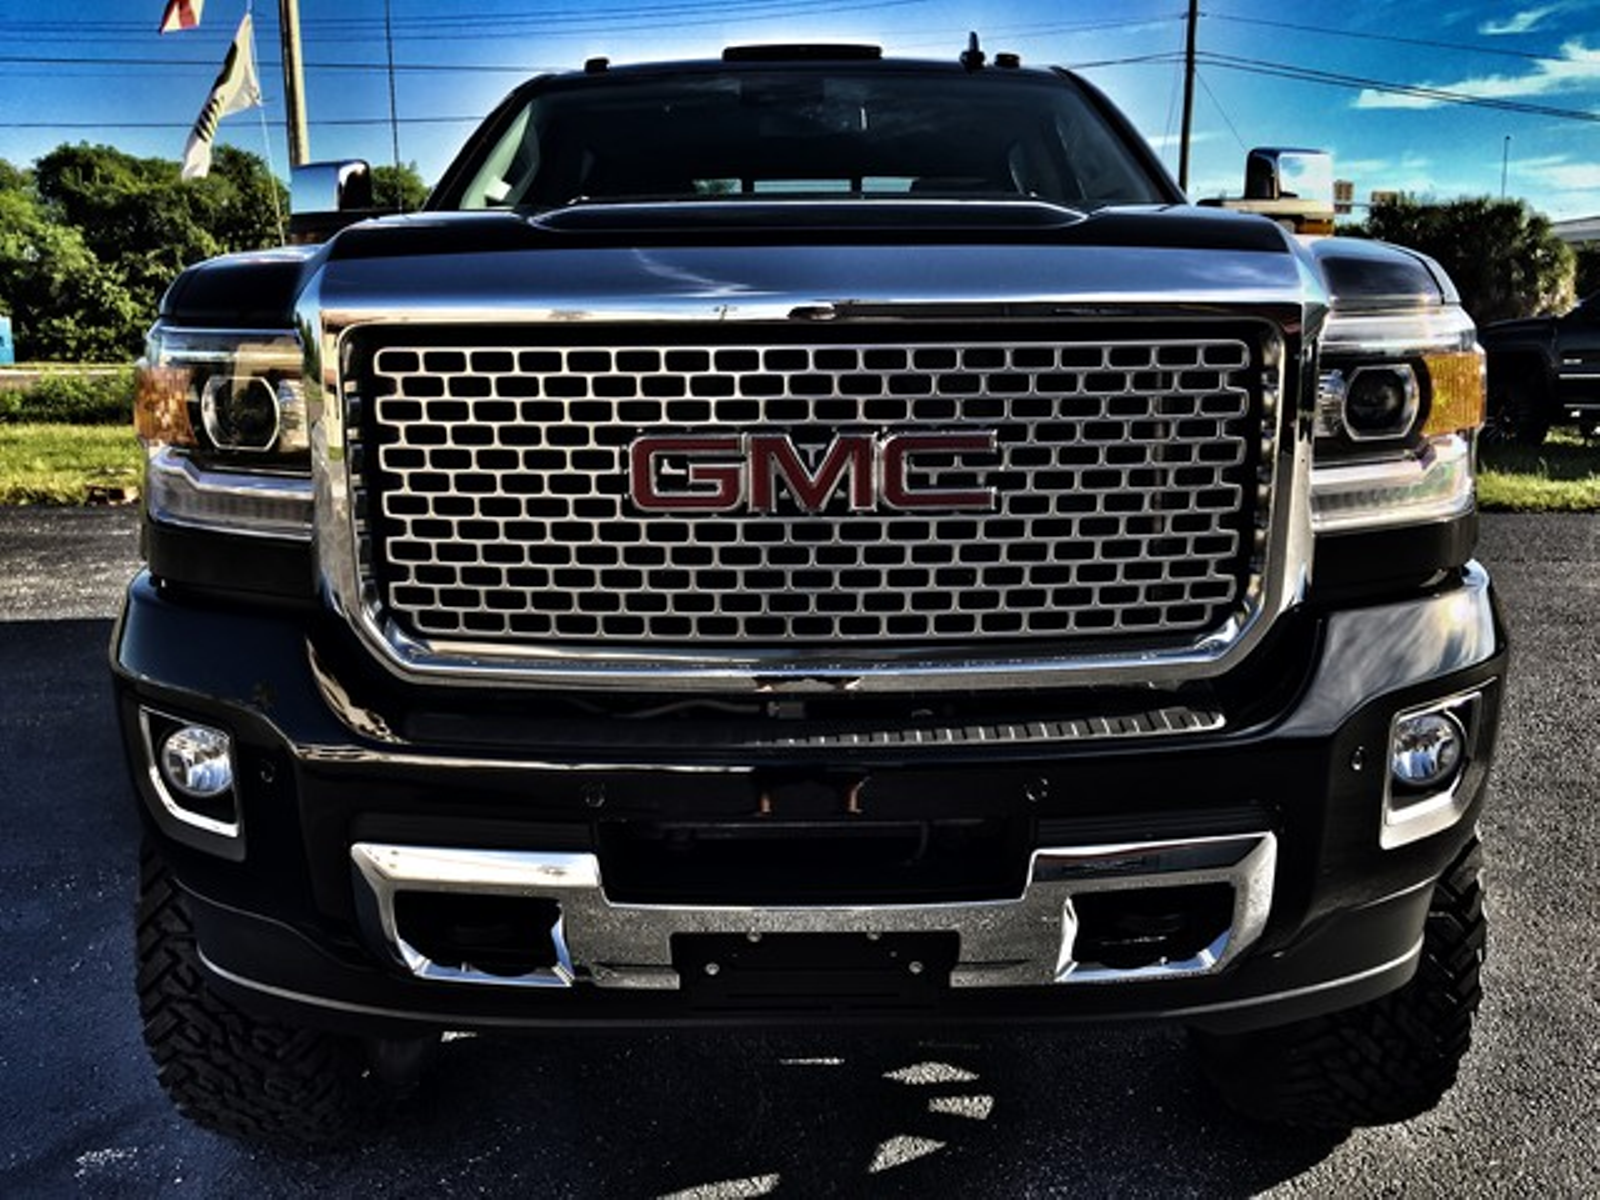 2016 gmc sierra 2500hd denali duramax 9 lift fuel turbo. Black Bedroom Furniture Sets. Home Design Ideas